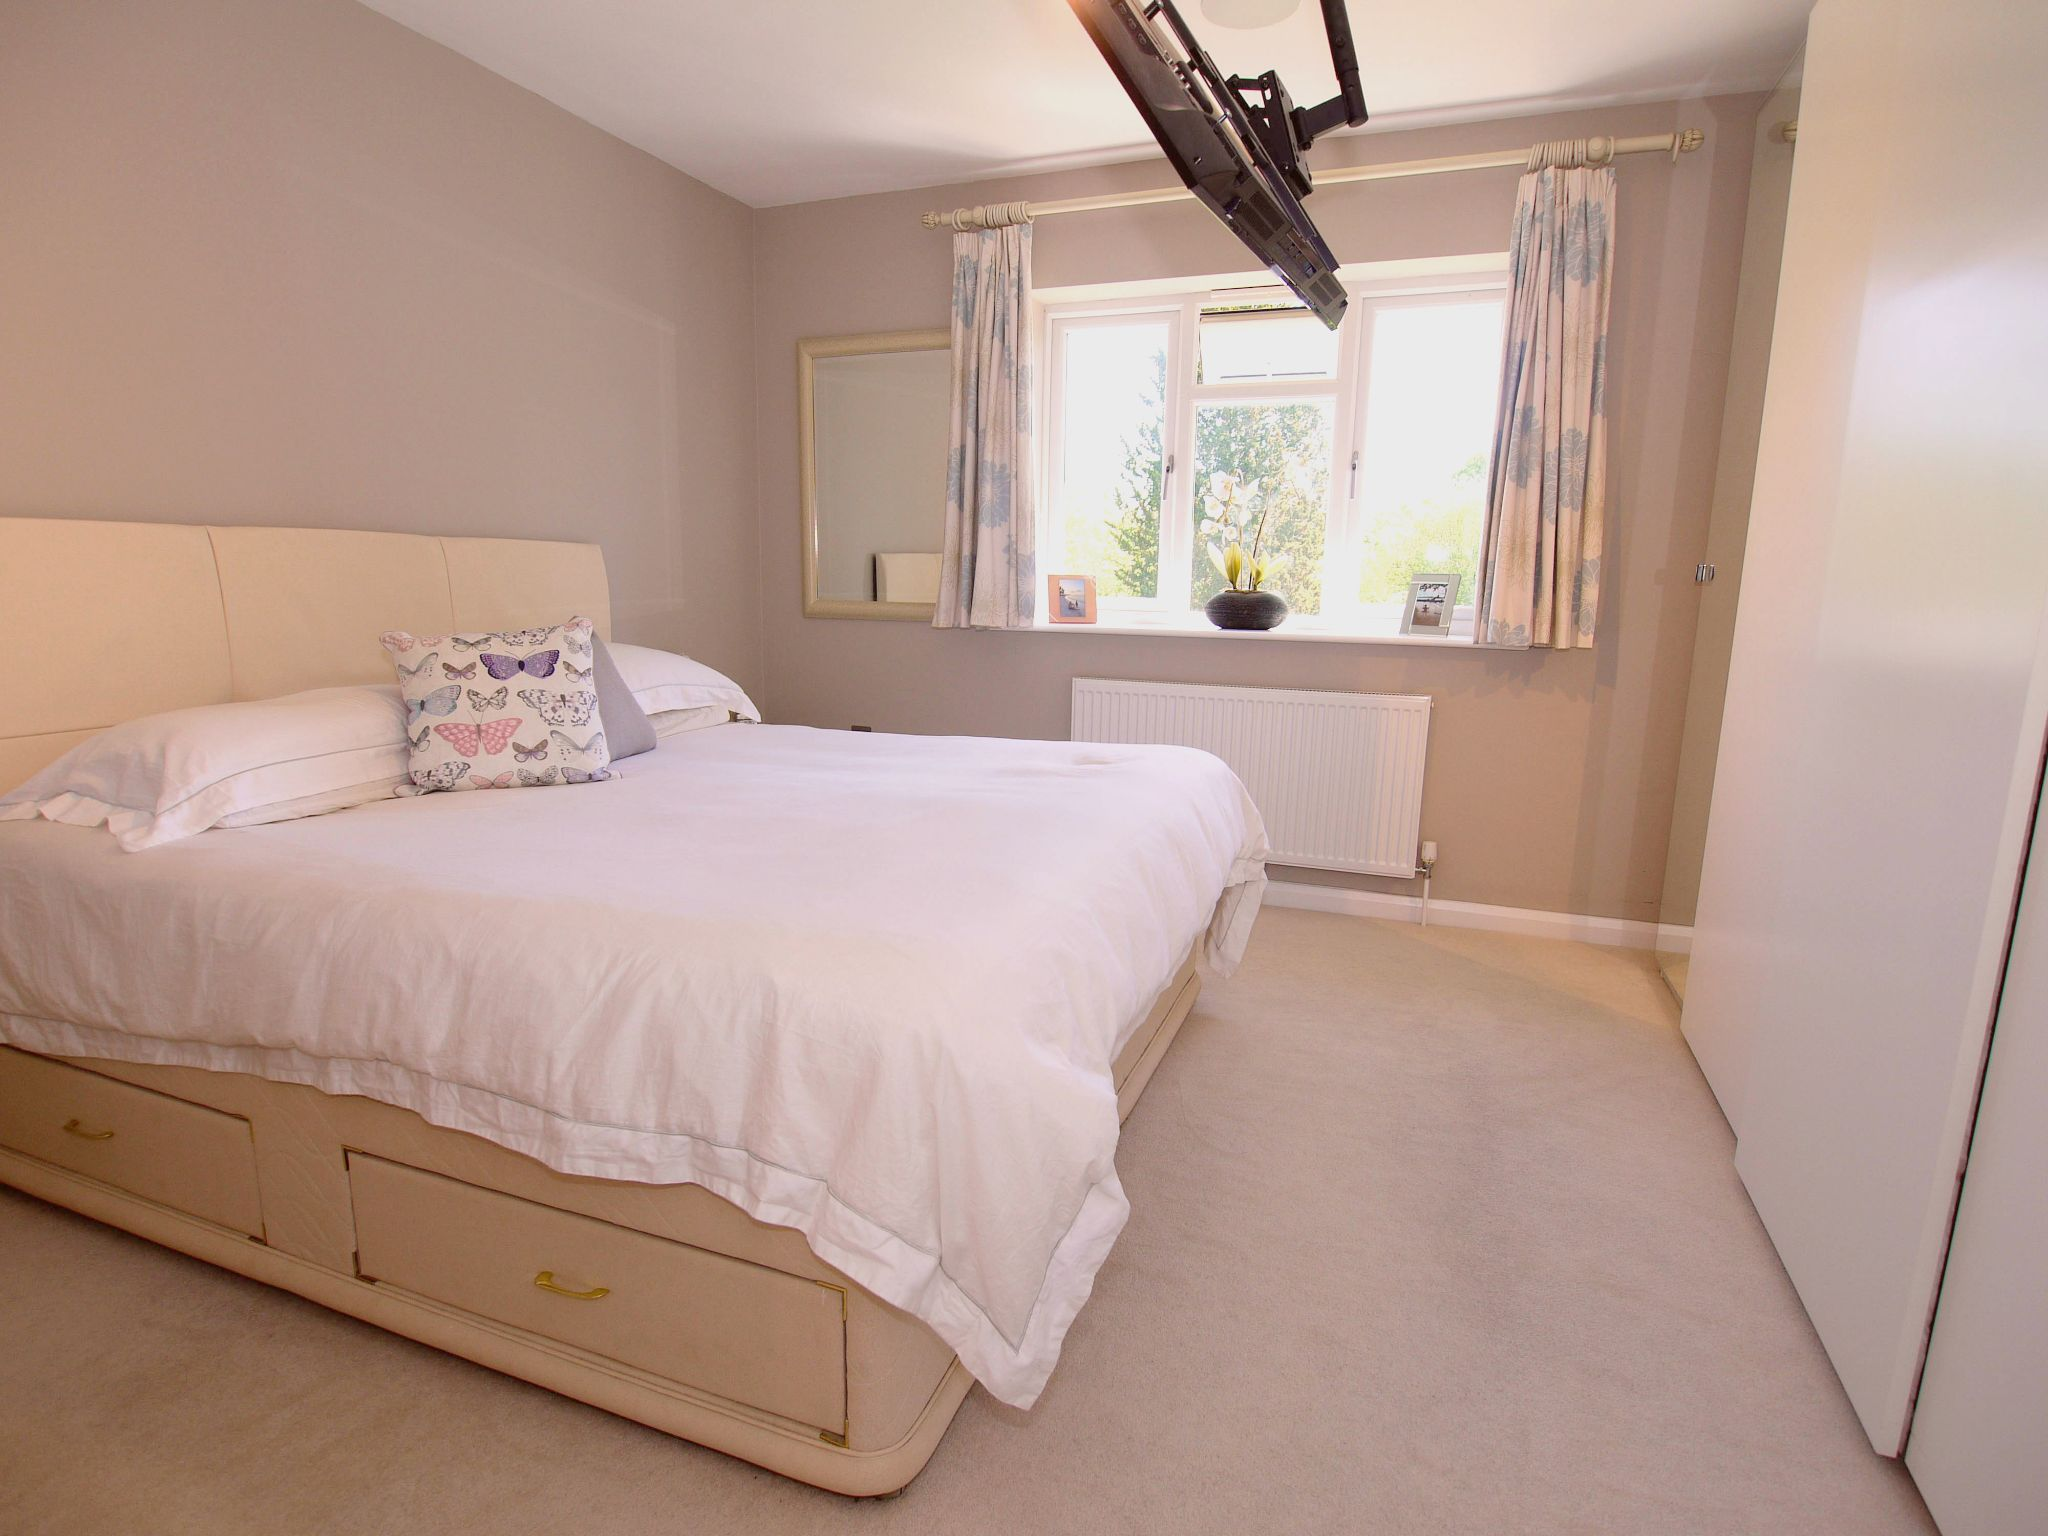 3 bedroom detached house For Sale in Sevenoaks - Photograph 5